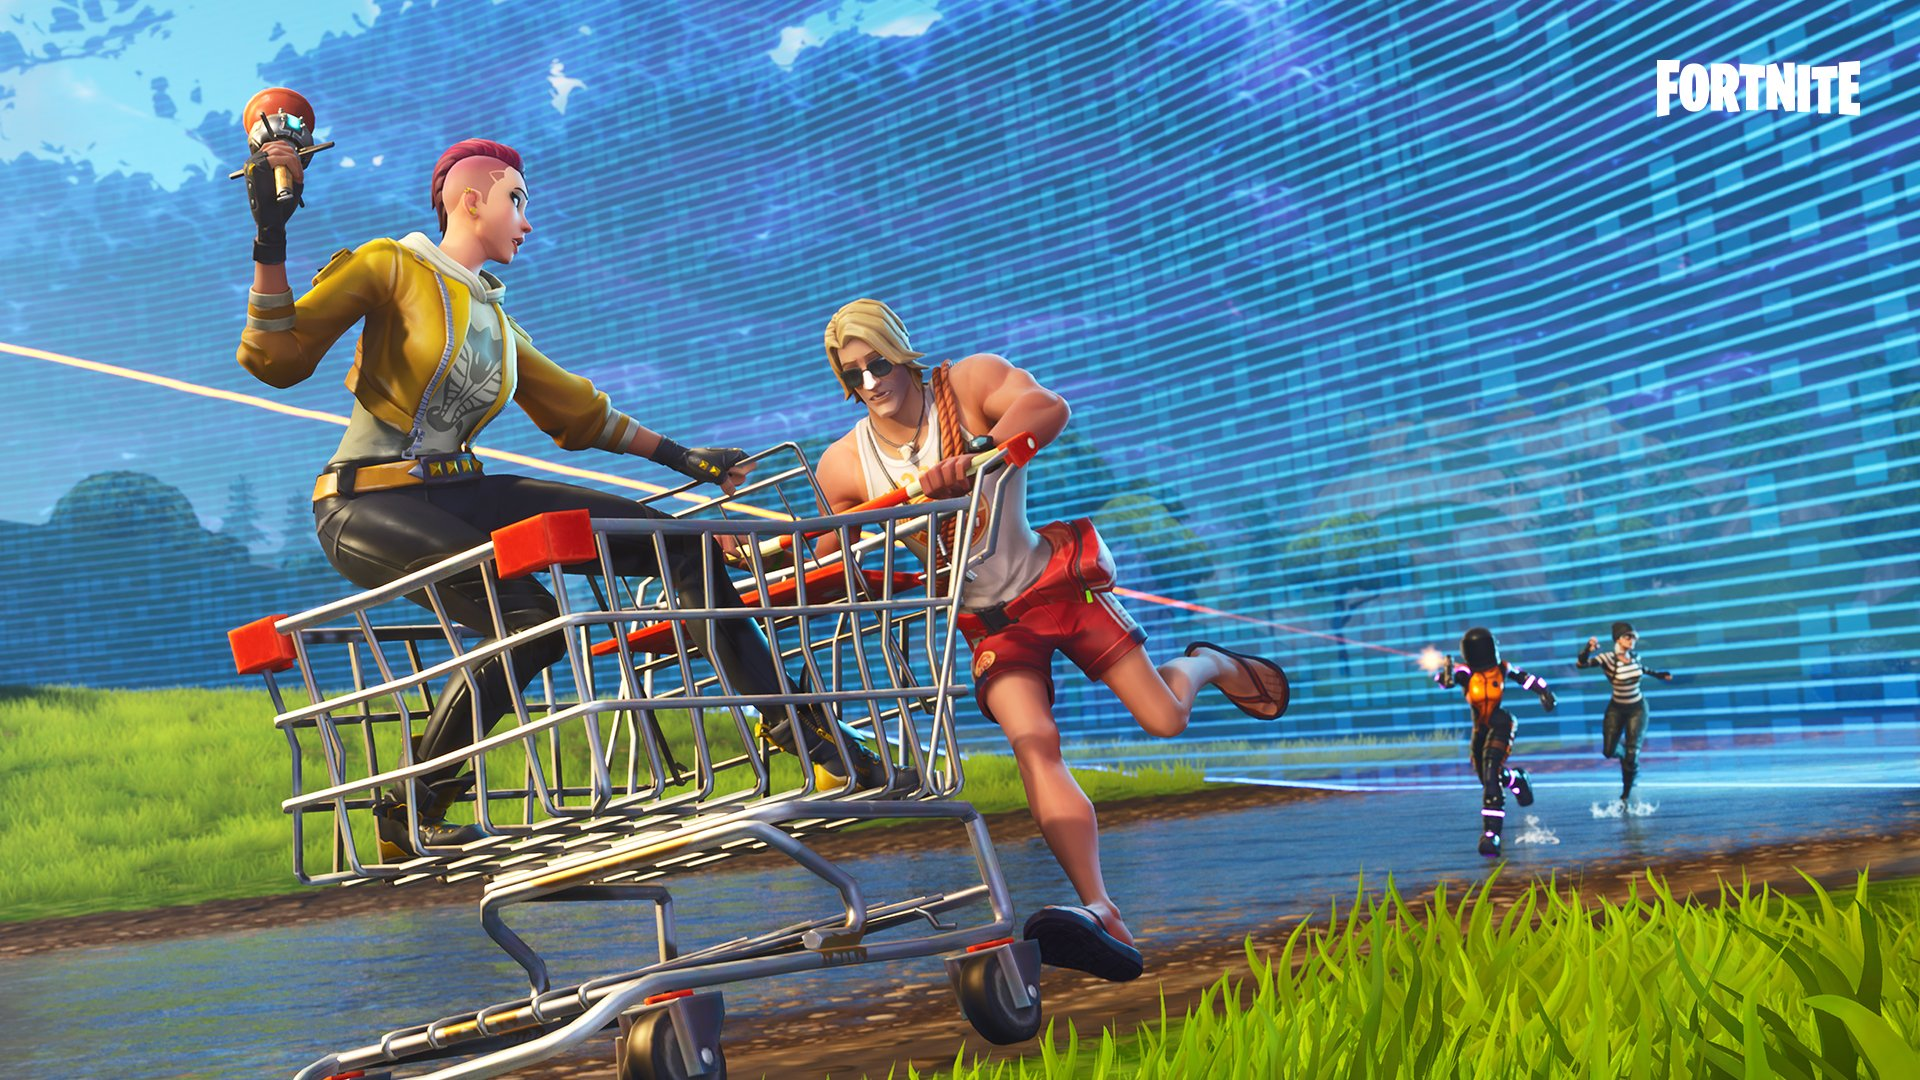 Fortnite 1.70 (5.20) Patch Notes